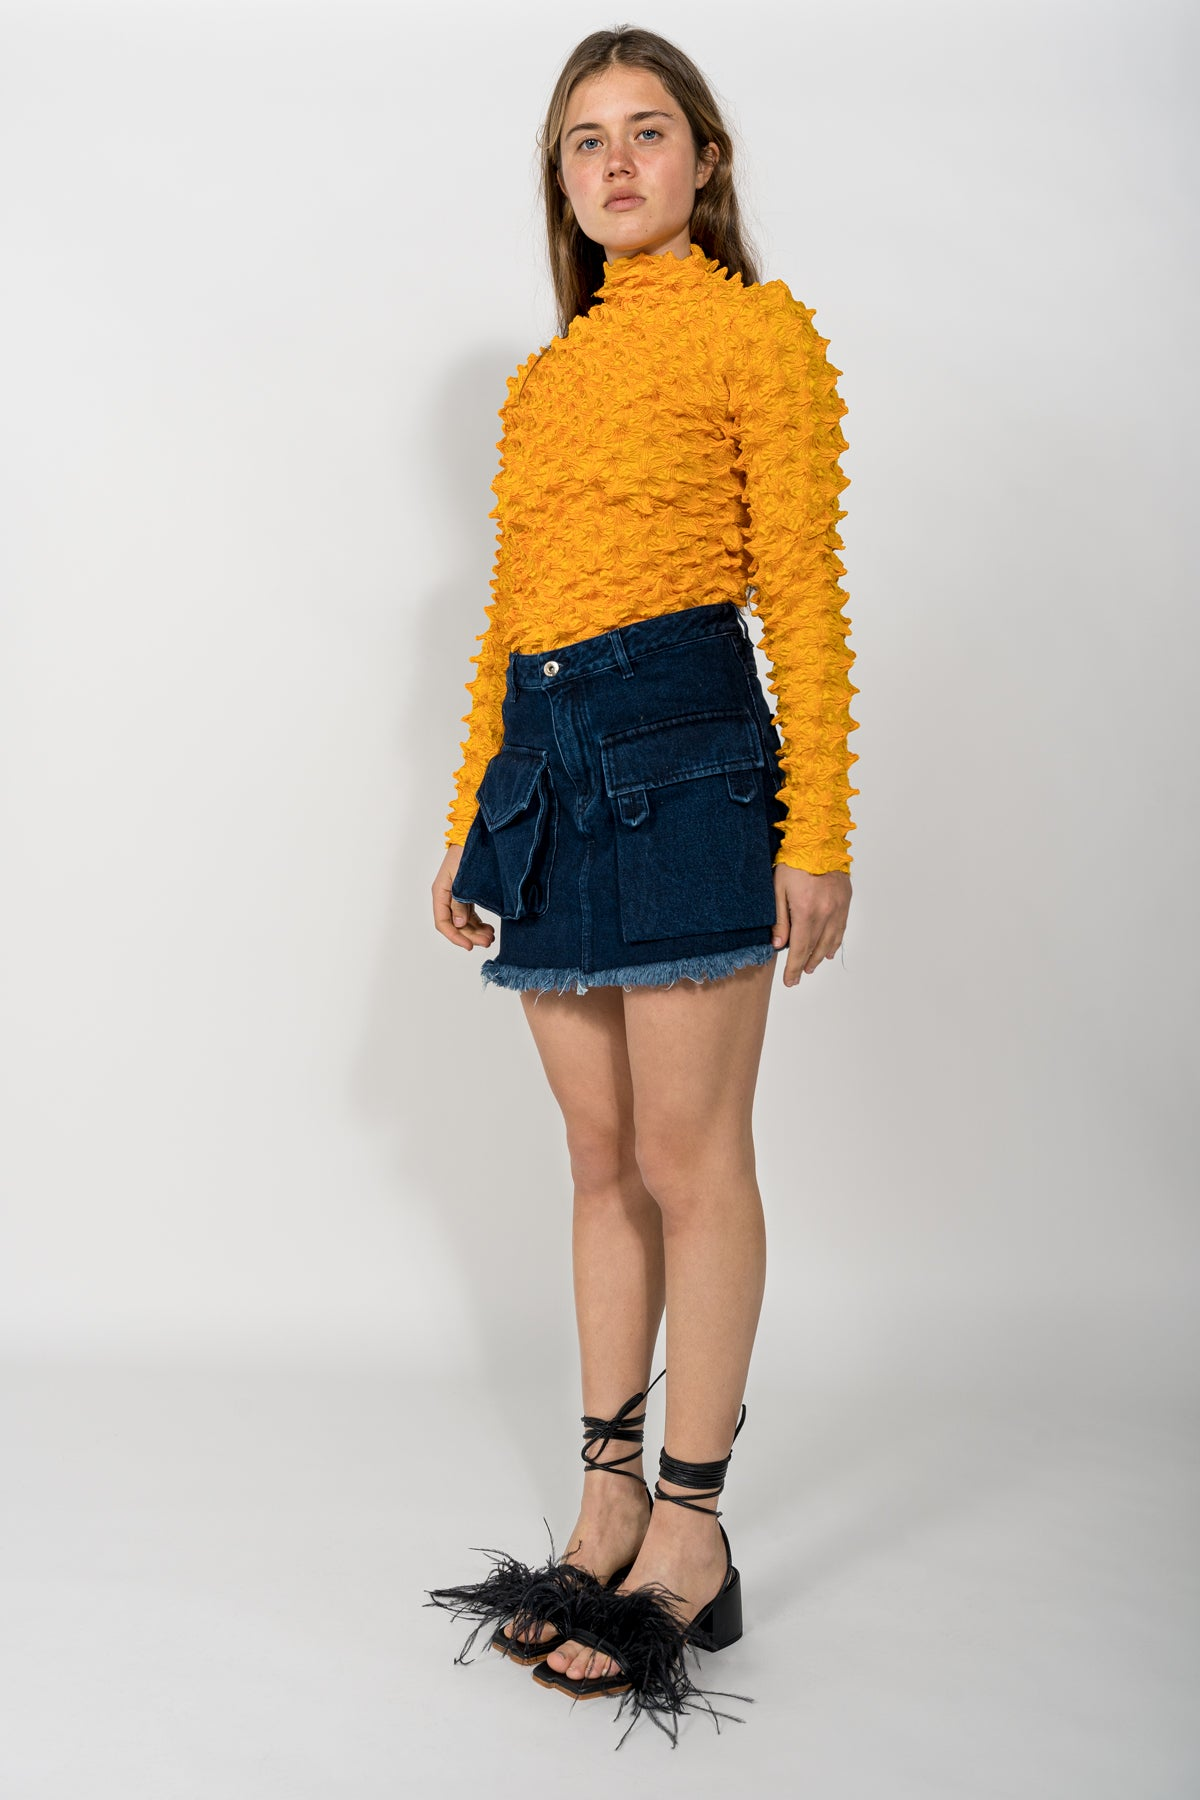 YELLOW SPIKED TOP